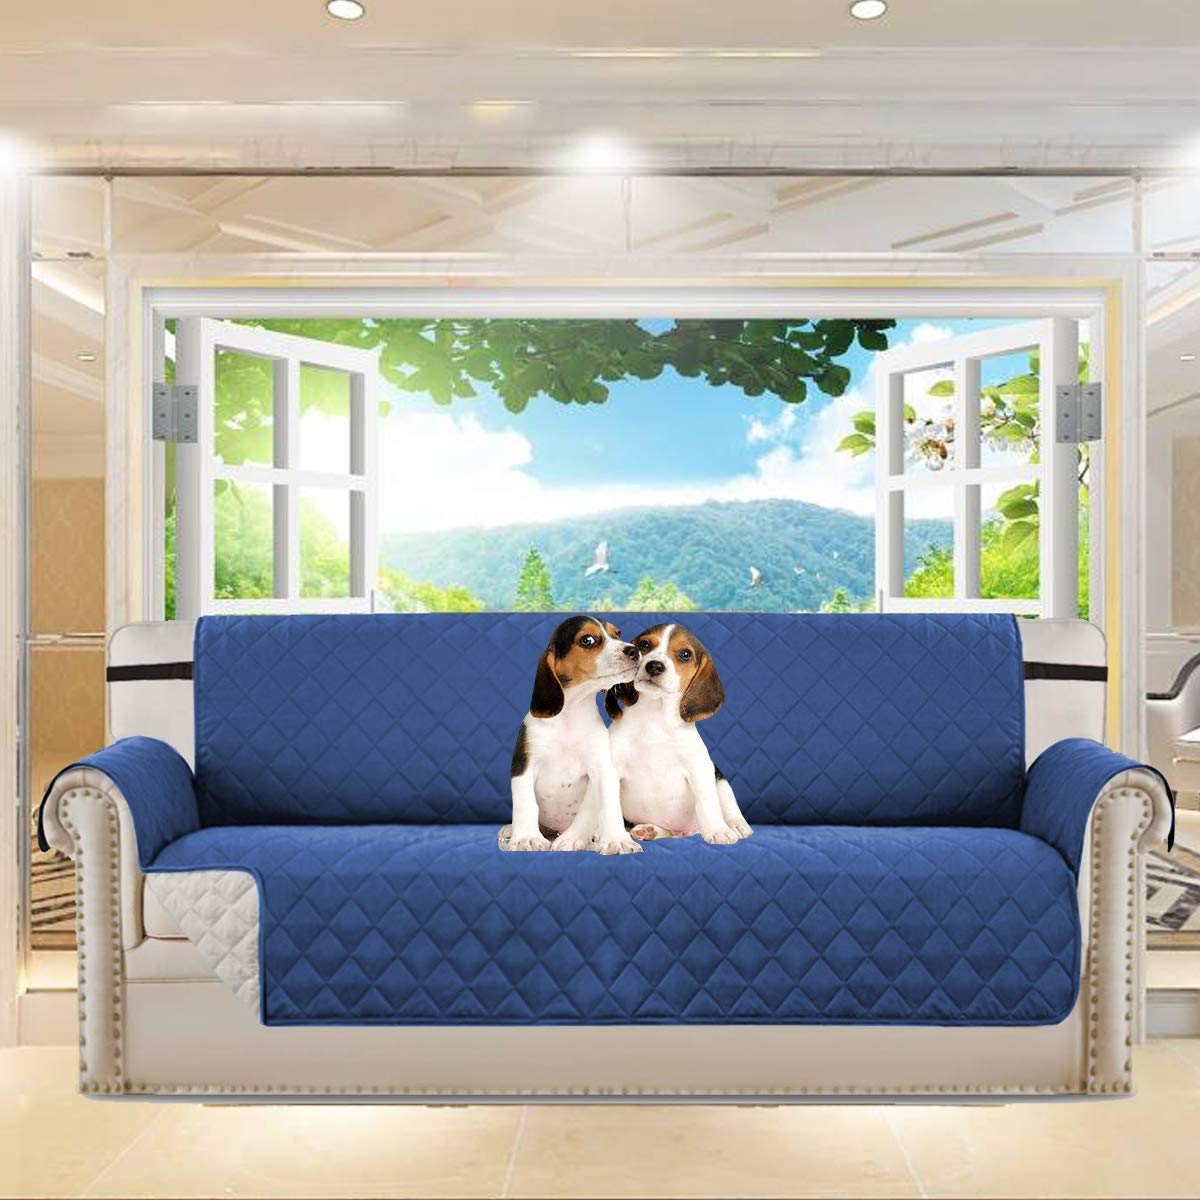 YDL Pet Sofa Cover, Reversible Couch Cover For Dogs, Kids, Pets, Sofa  Slipcover Set Furniture Protector For 3 Cushion Couch, Recliner, Loveseat  And Chair ...